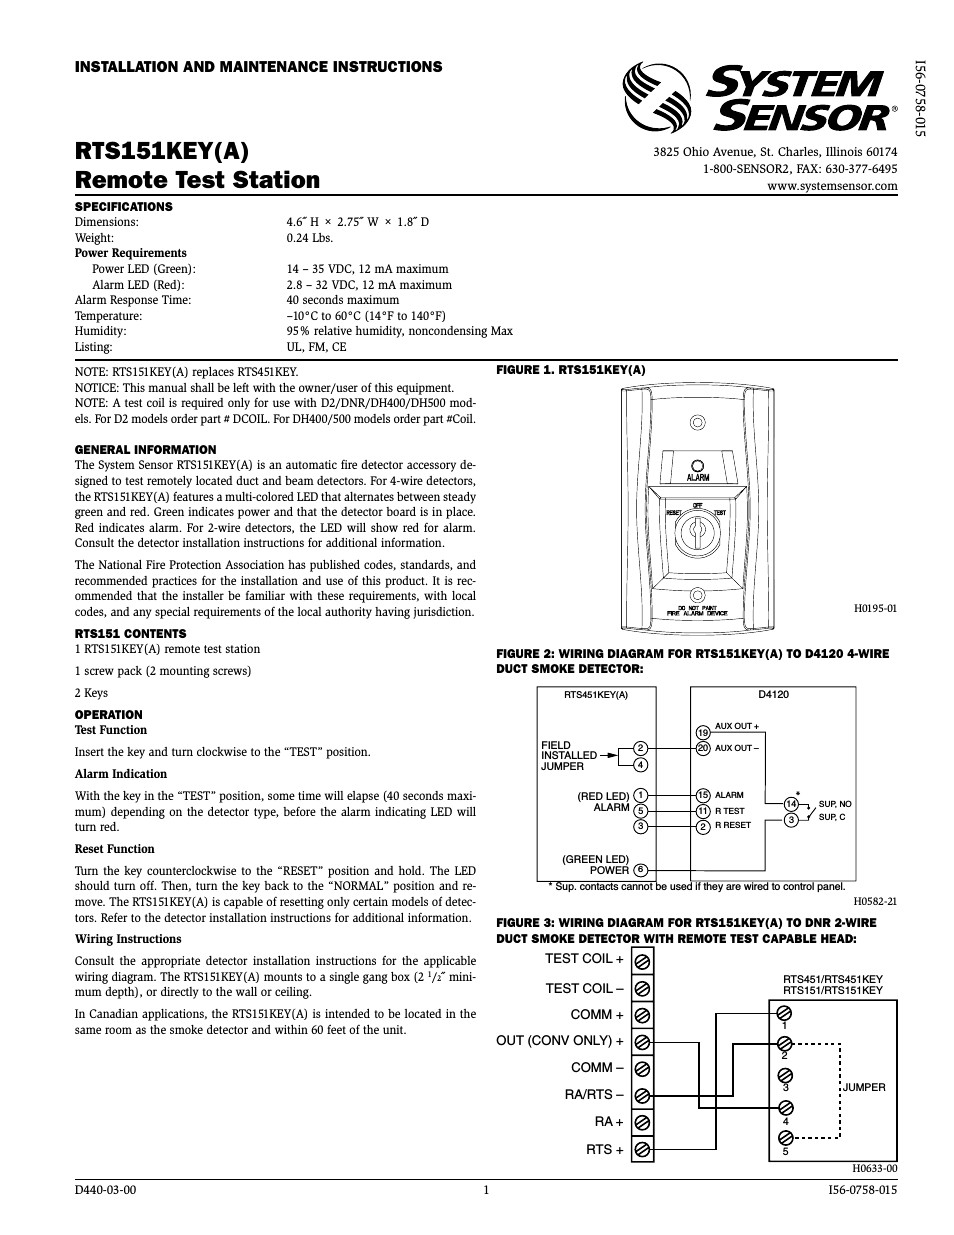 American Standard Gas Furnace Wiring Diagram Model Tus120 Free Wire System Sensor Pr 1 Download U2022 Oasis Dl Co